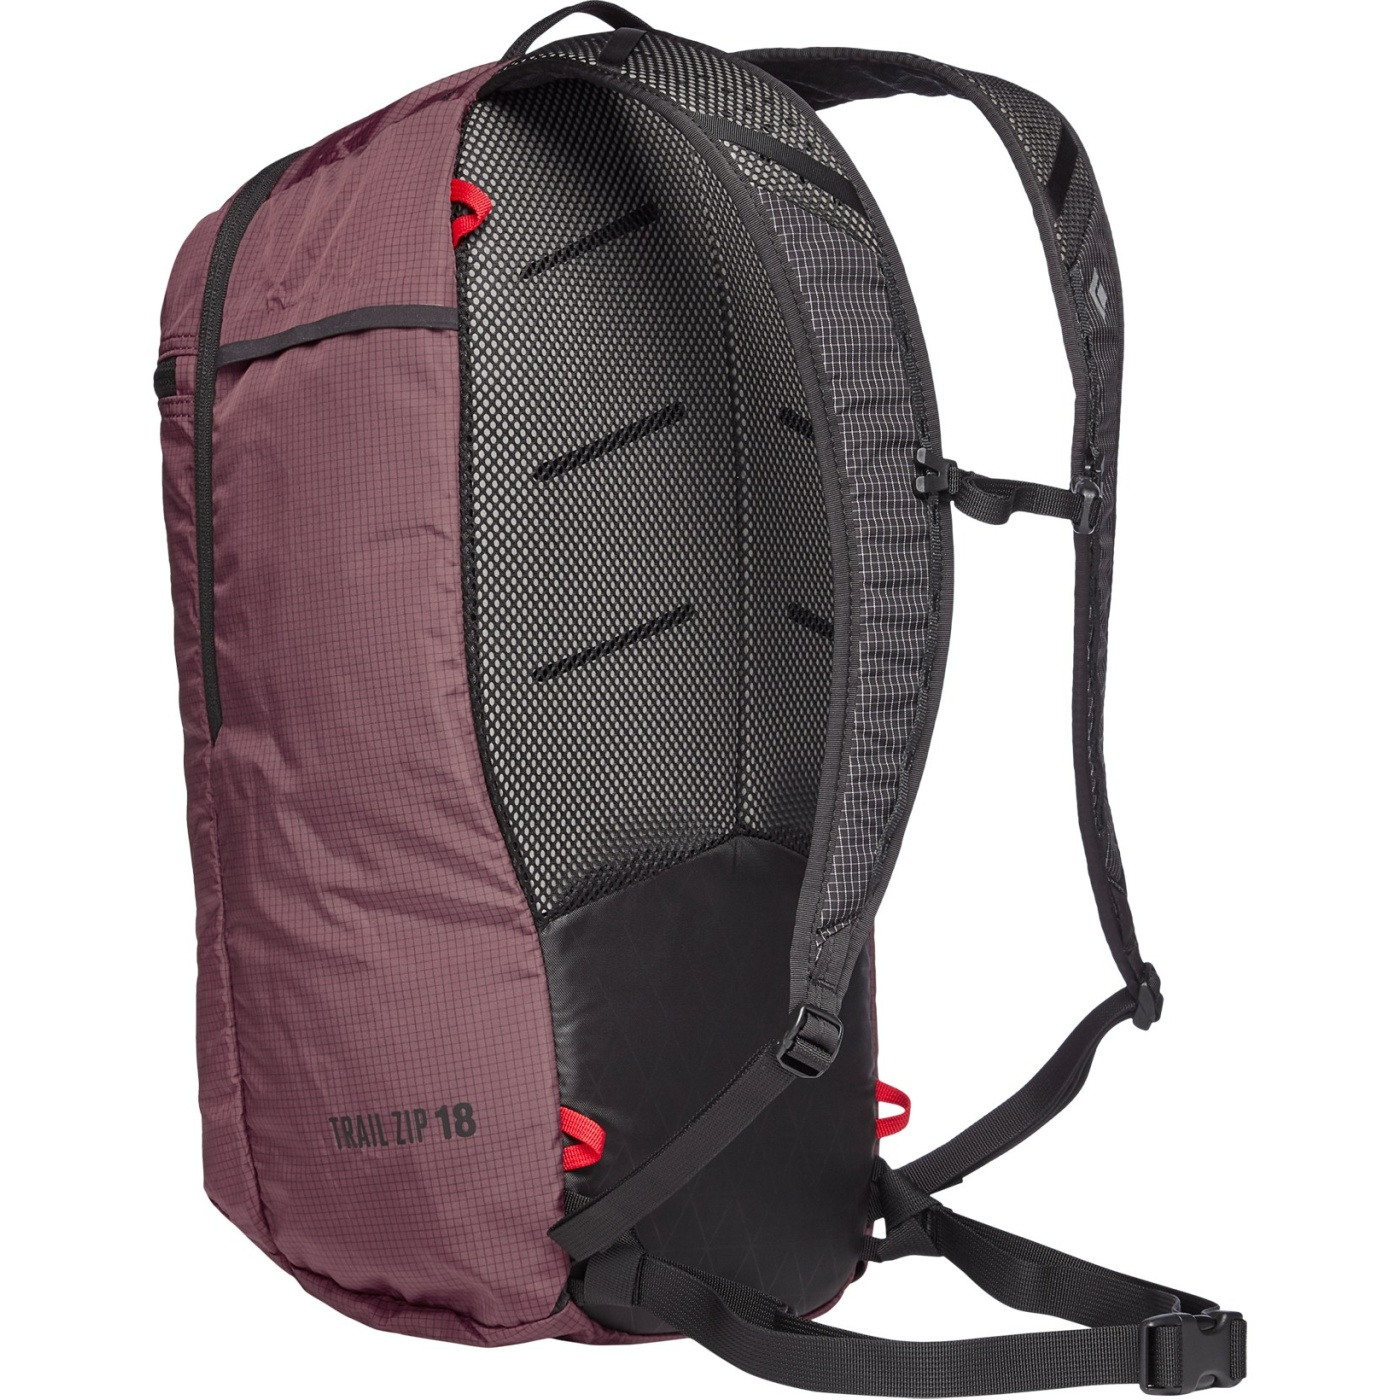 Image of Black Diamond Trail Zip 18 Backpack - Mulberry